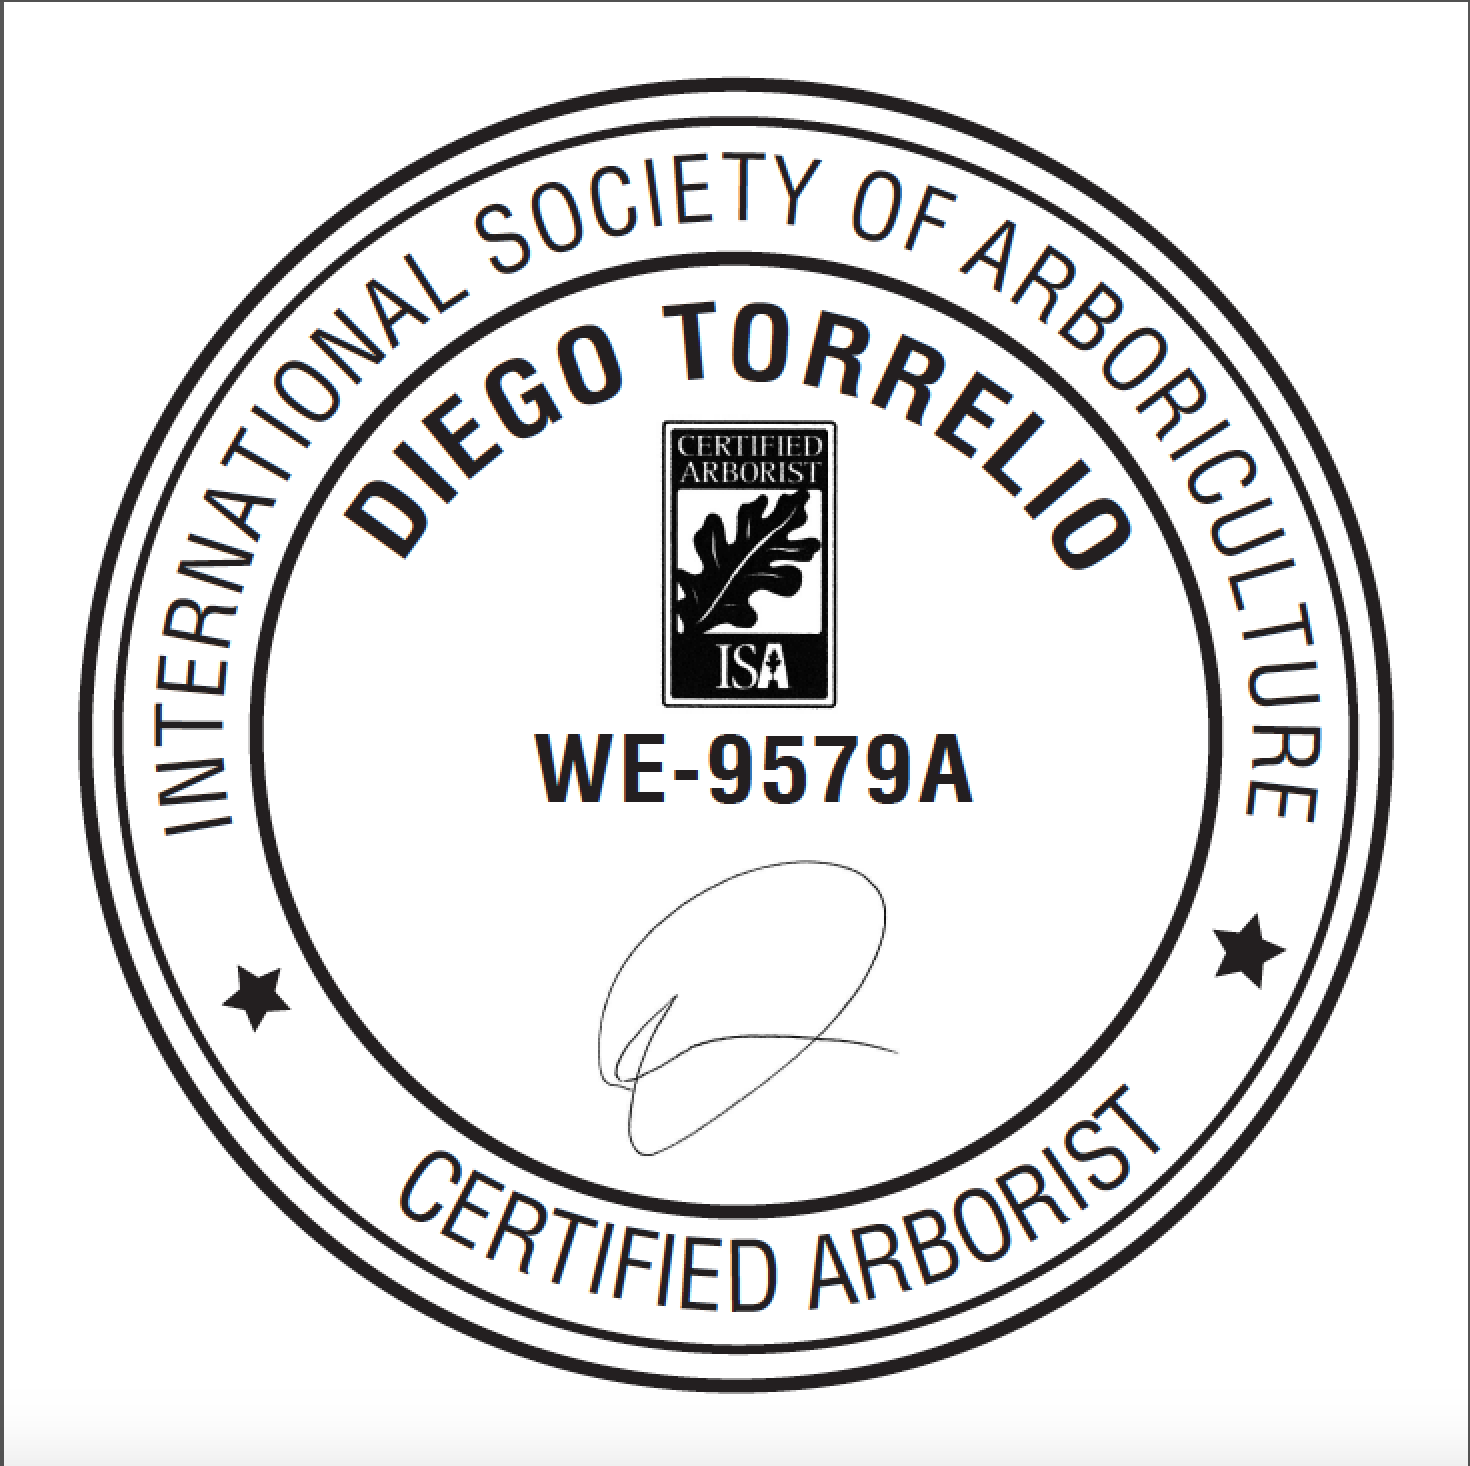 circlefoot permaculture arborist services 9 circlefoot Intel Symbol diego torrelio is a certified arborist and owner of circlefoot permaculture